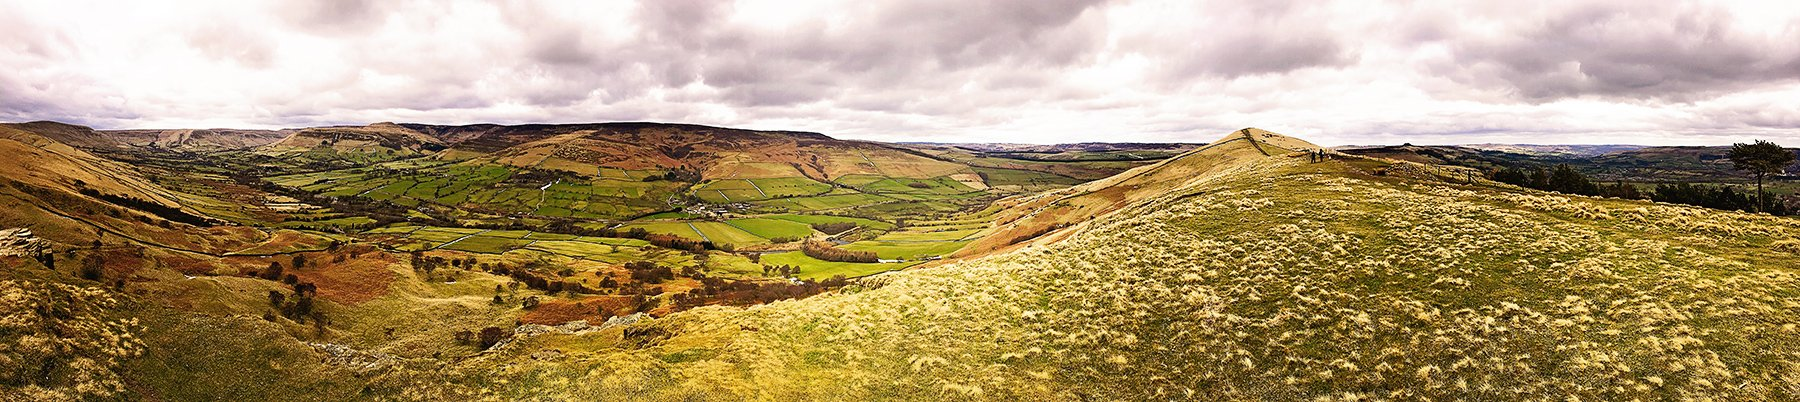 Spectacular views from Lose Hill in the Peak District.